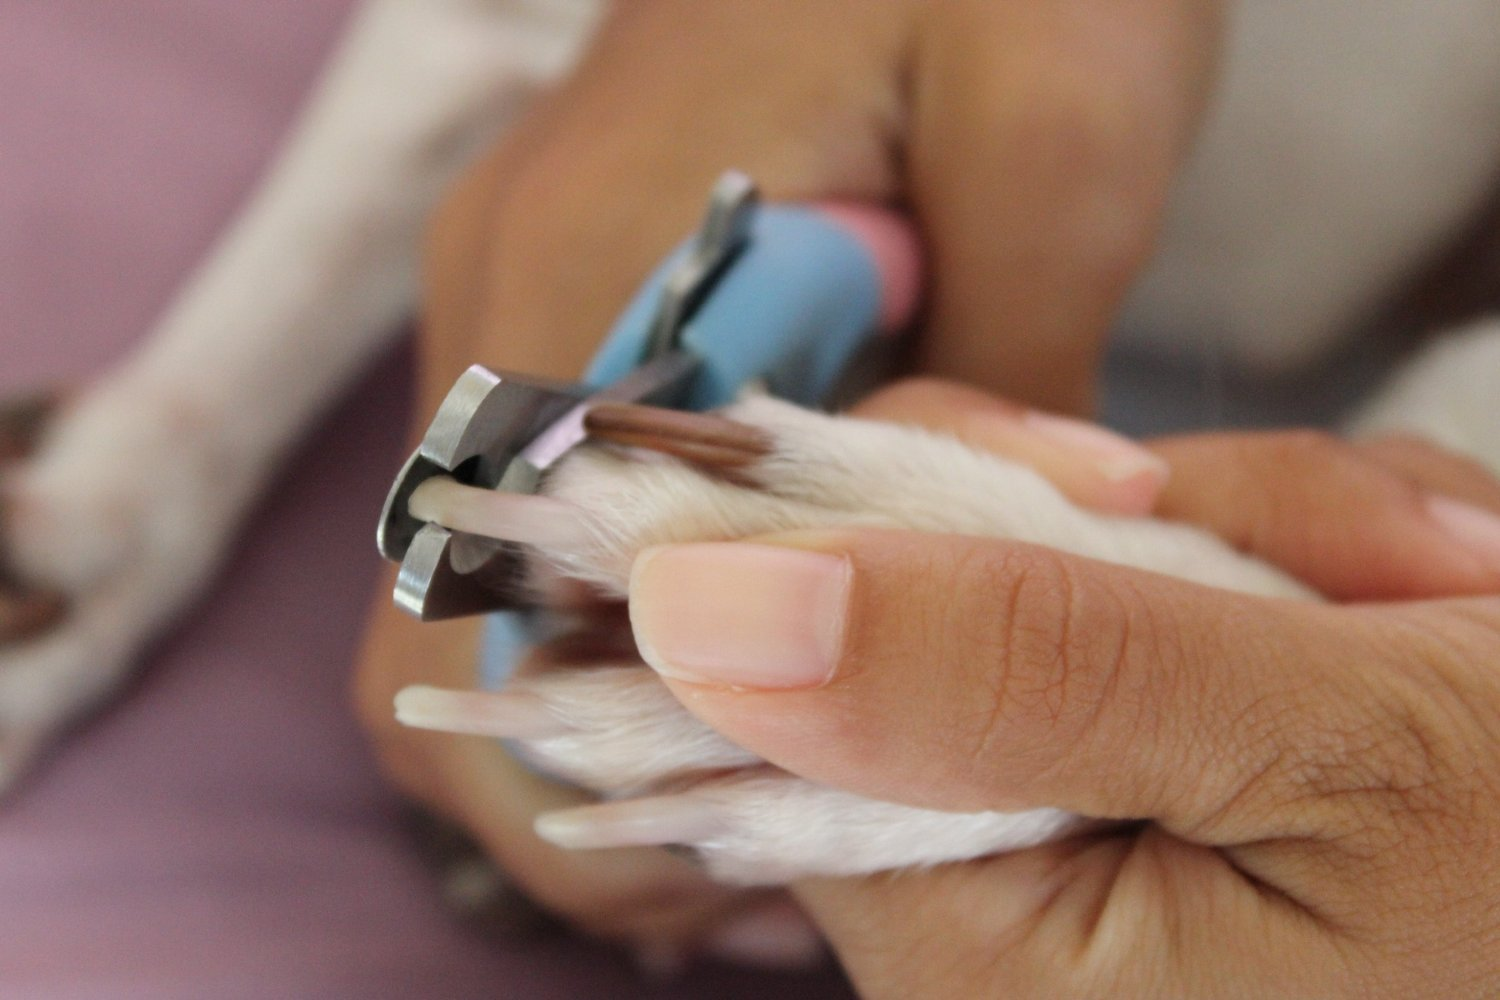 Amazon.com : Dog Nail Clippers - Get the Best Pet Nail Trimmers for ...